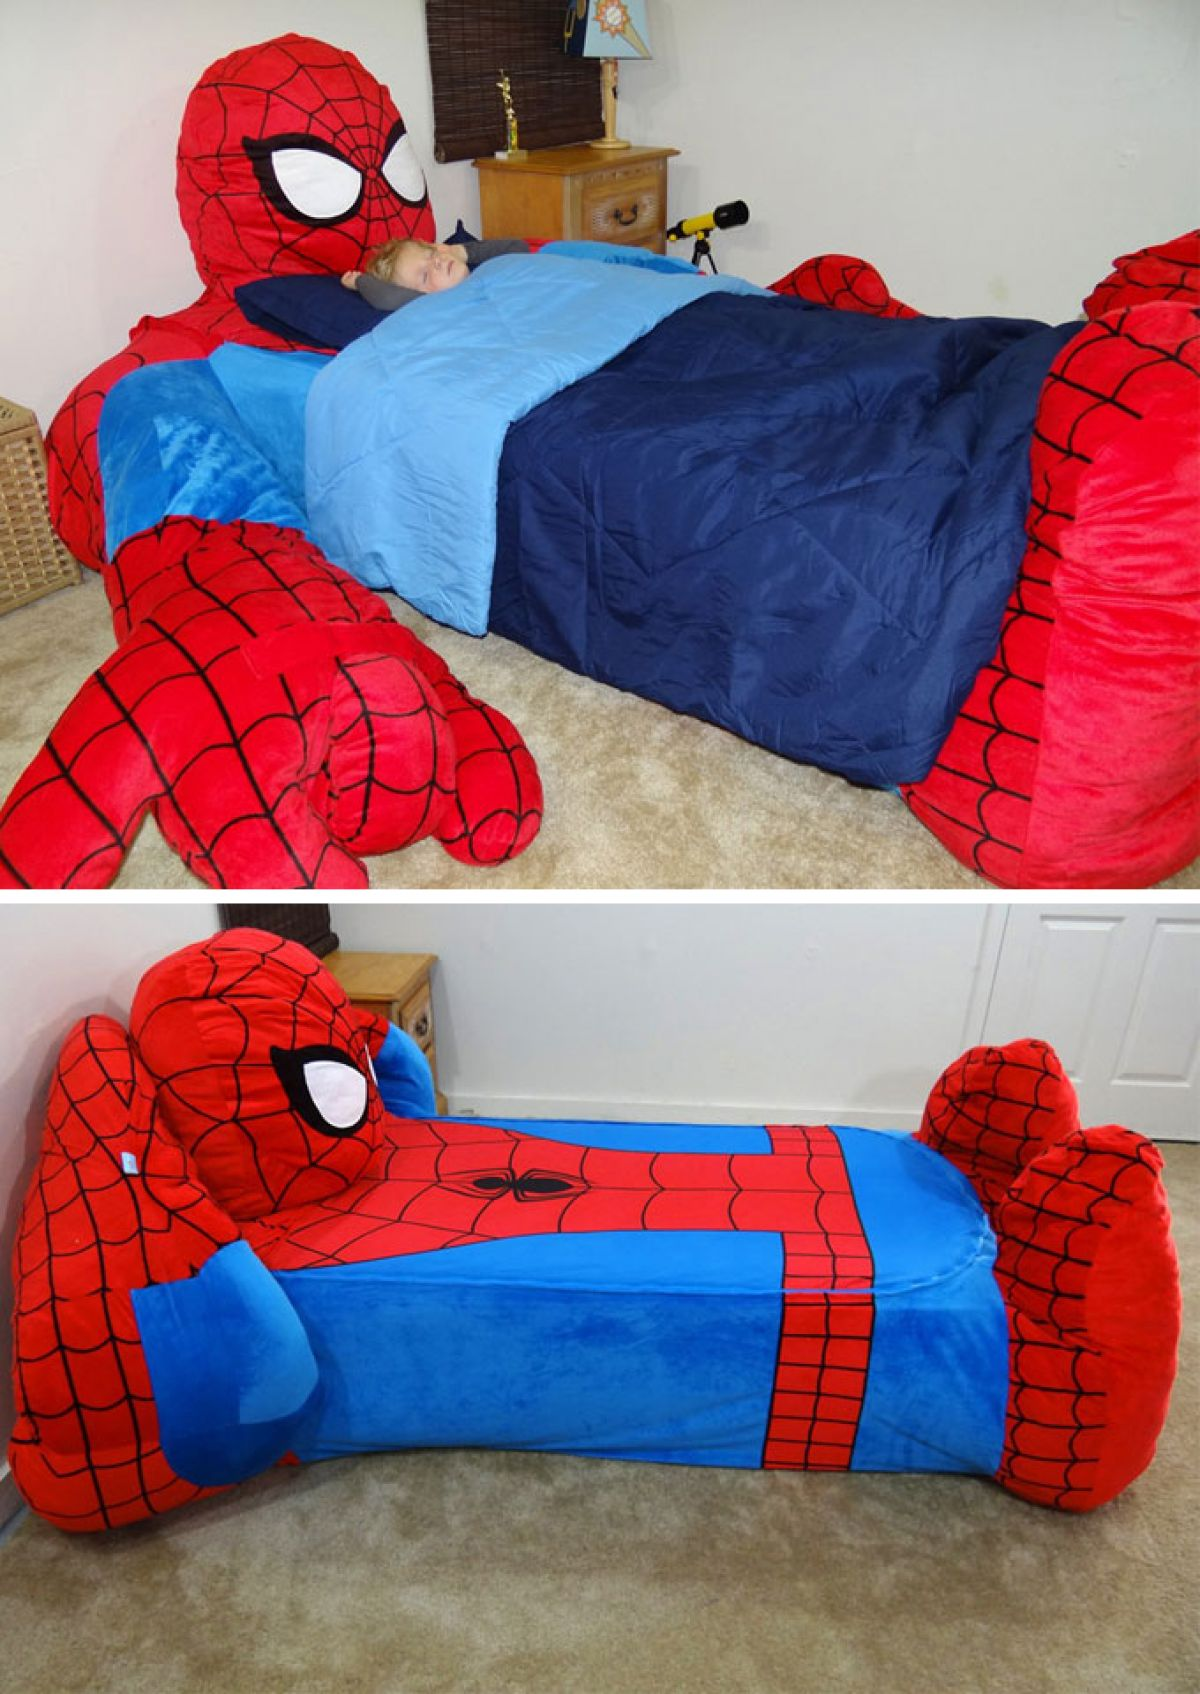 14 amazing beds you'll never want to get out of in the morning